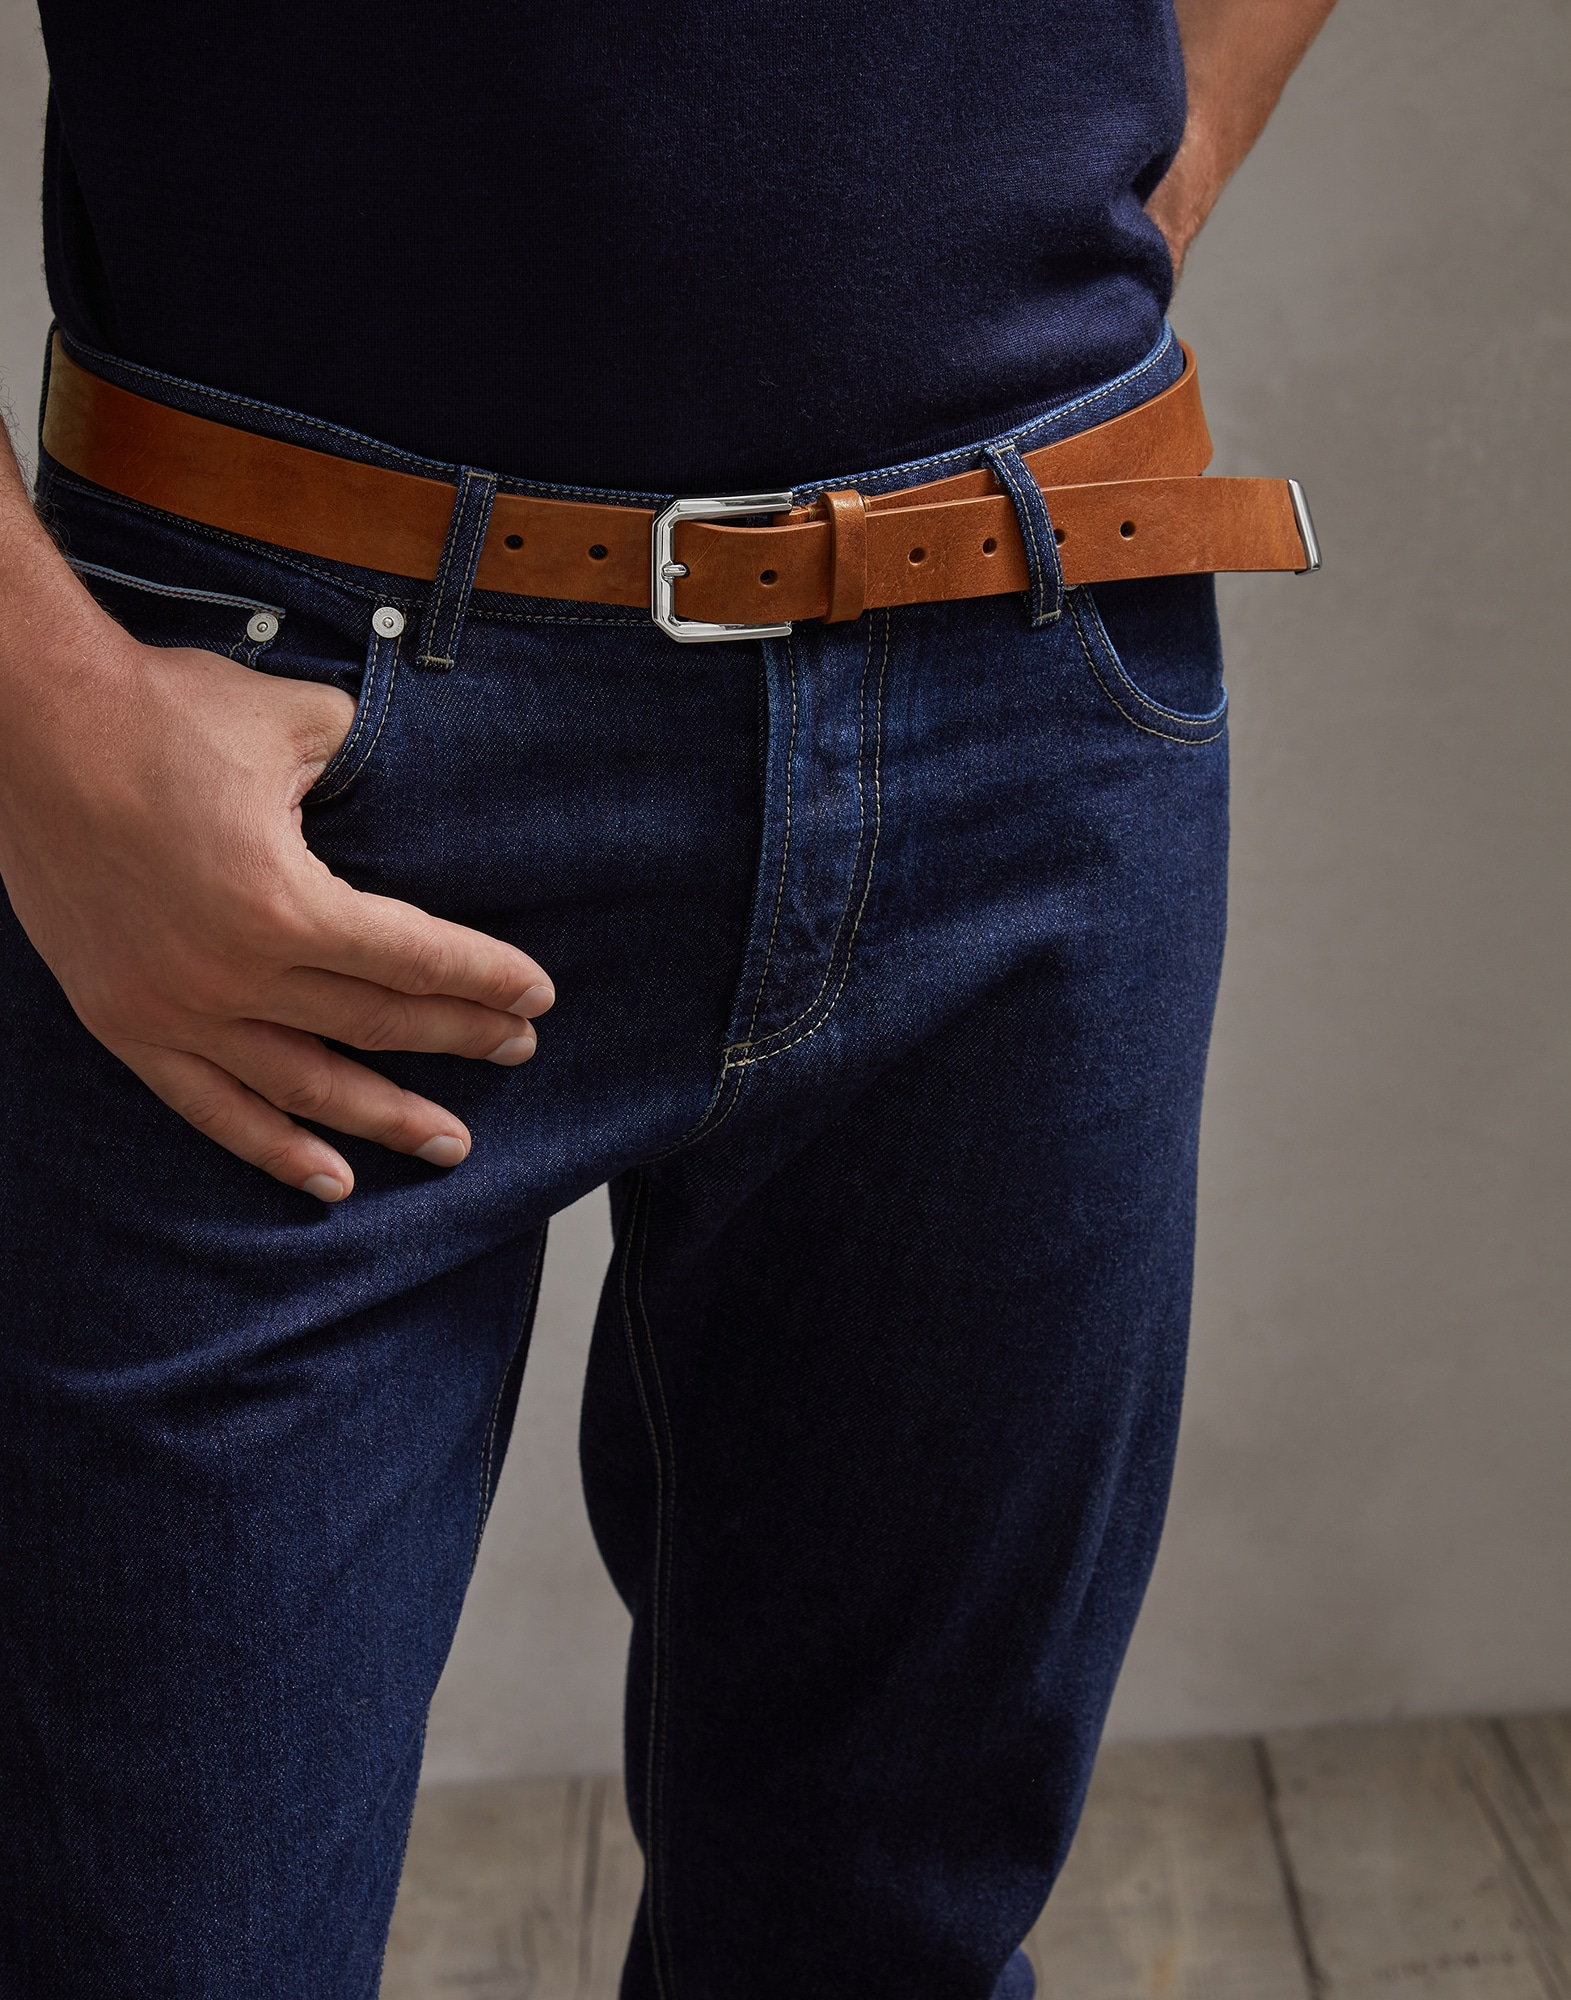 Belt Crumble Man 2 - Brunello Cucinelli